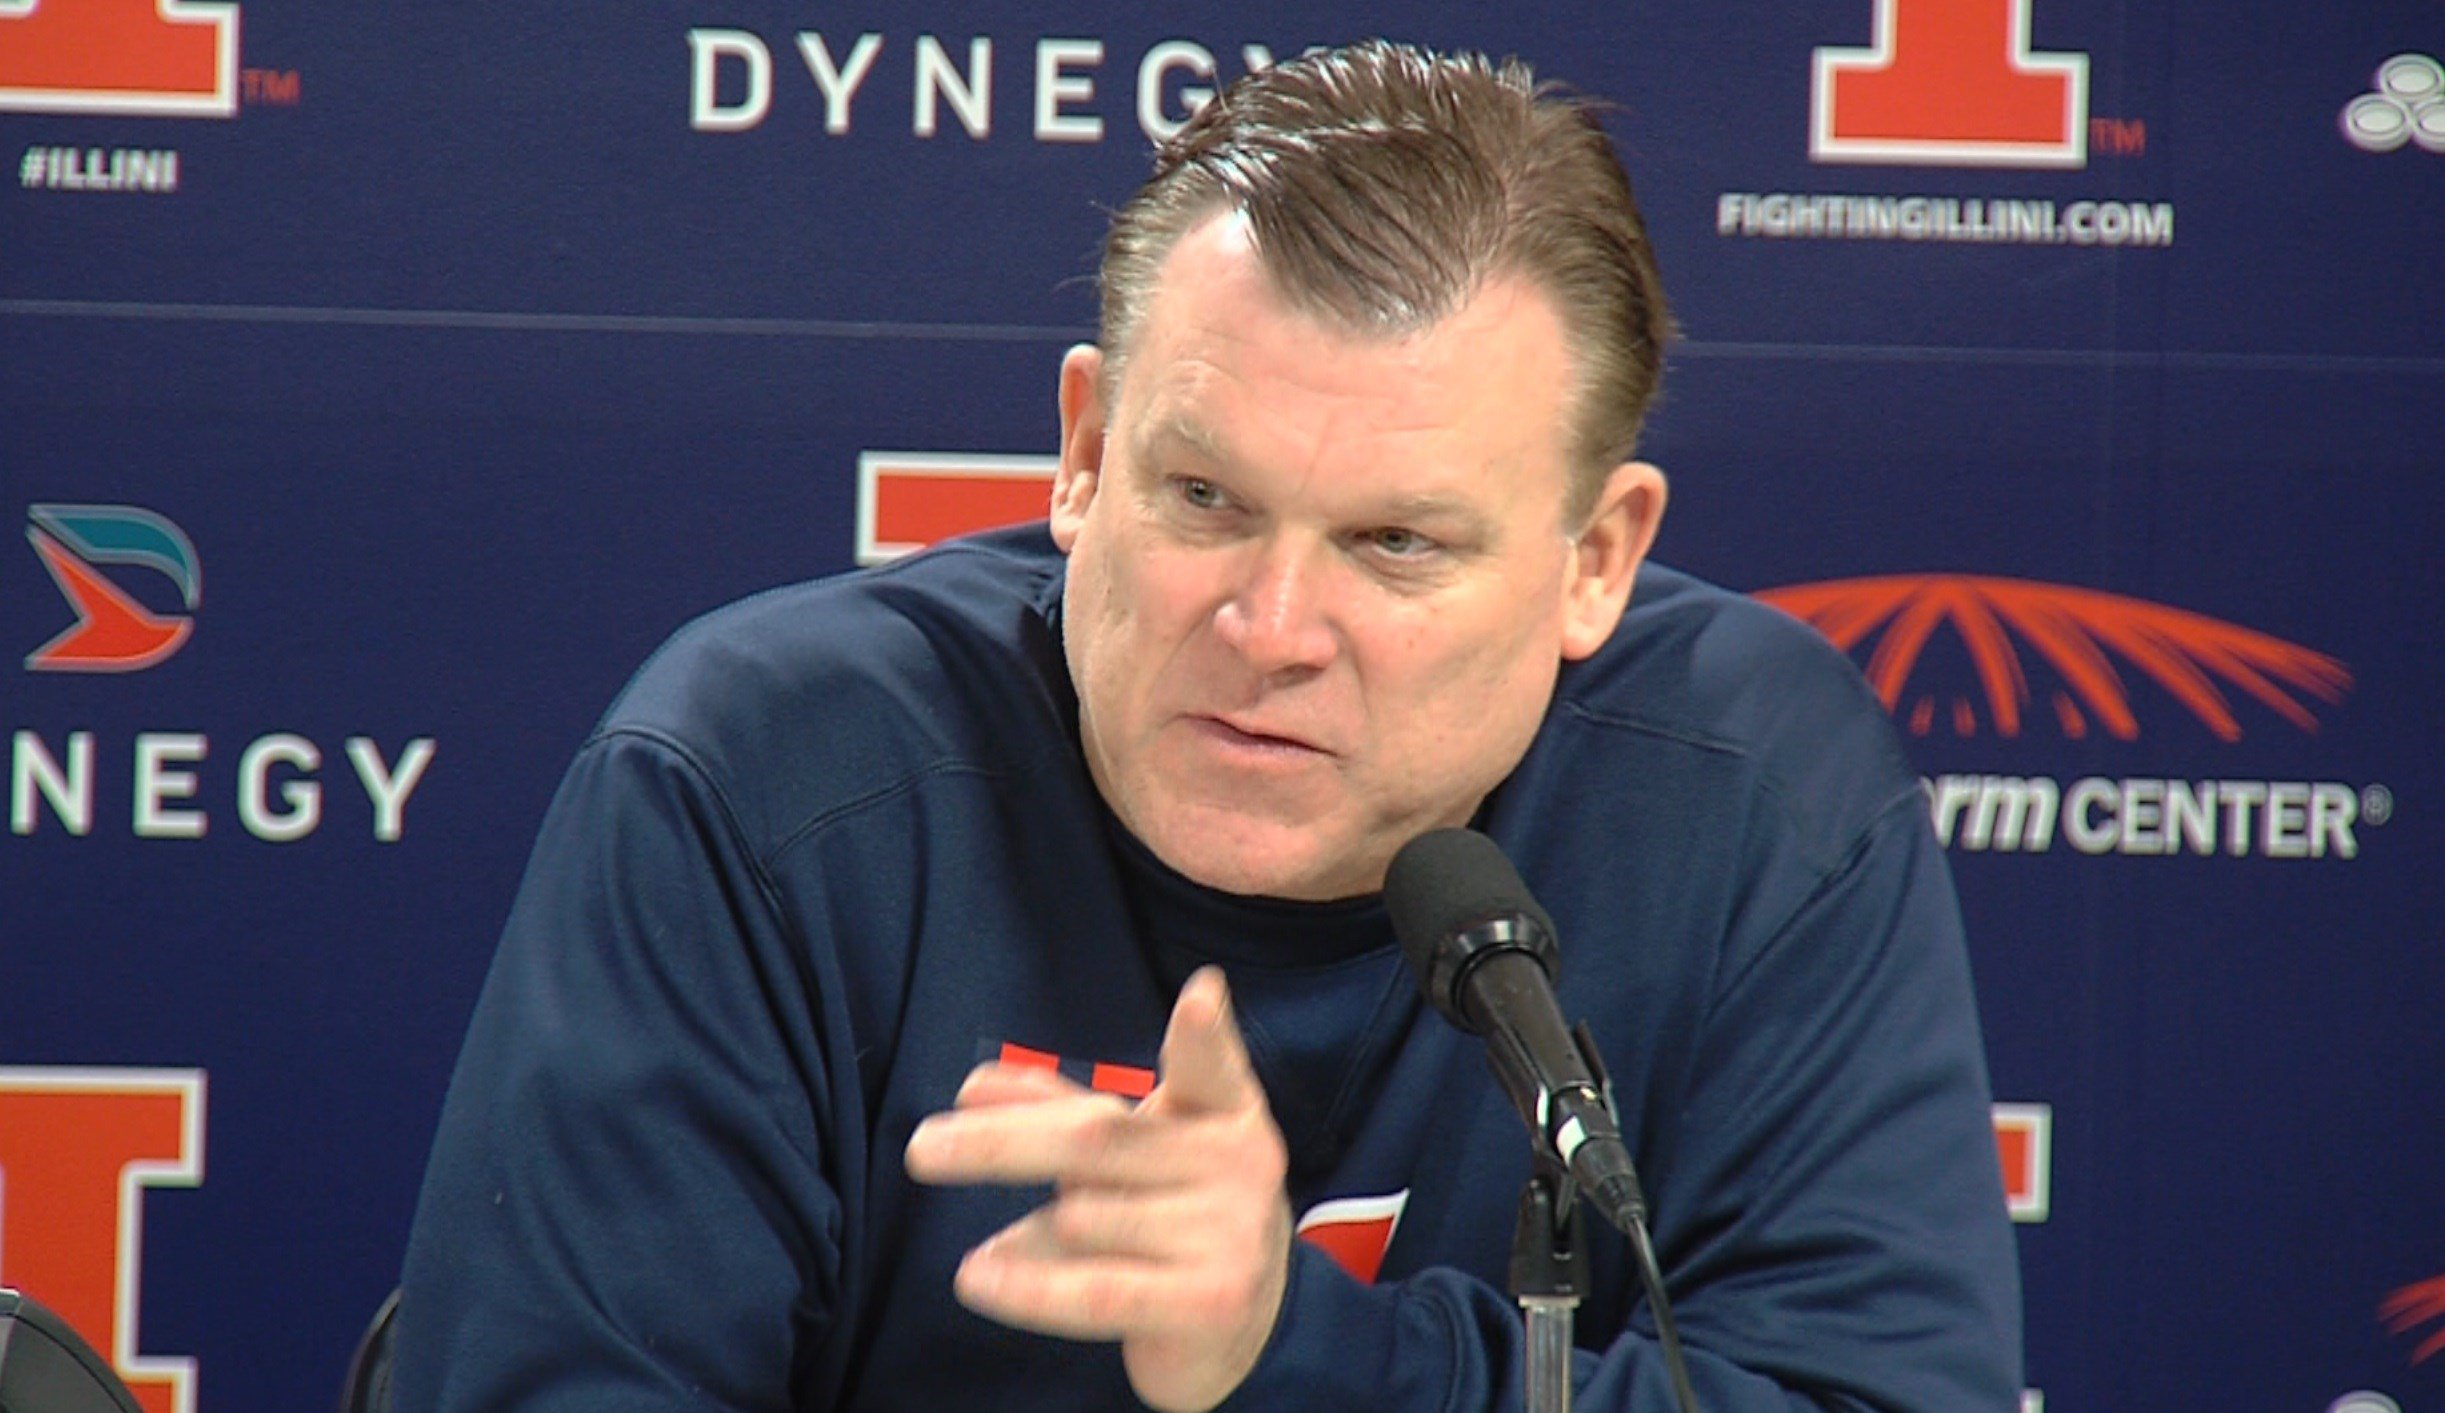 Illinois' Brad Underwood will take on Purdue for the first time in his head coaching career when the Illini welcome the No. 9 Boilermakers to the State Farm Center on Thursday night.